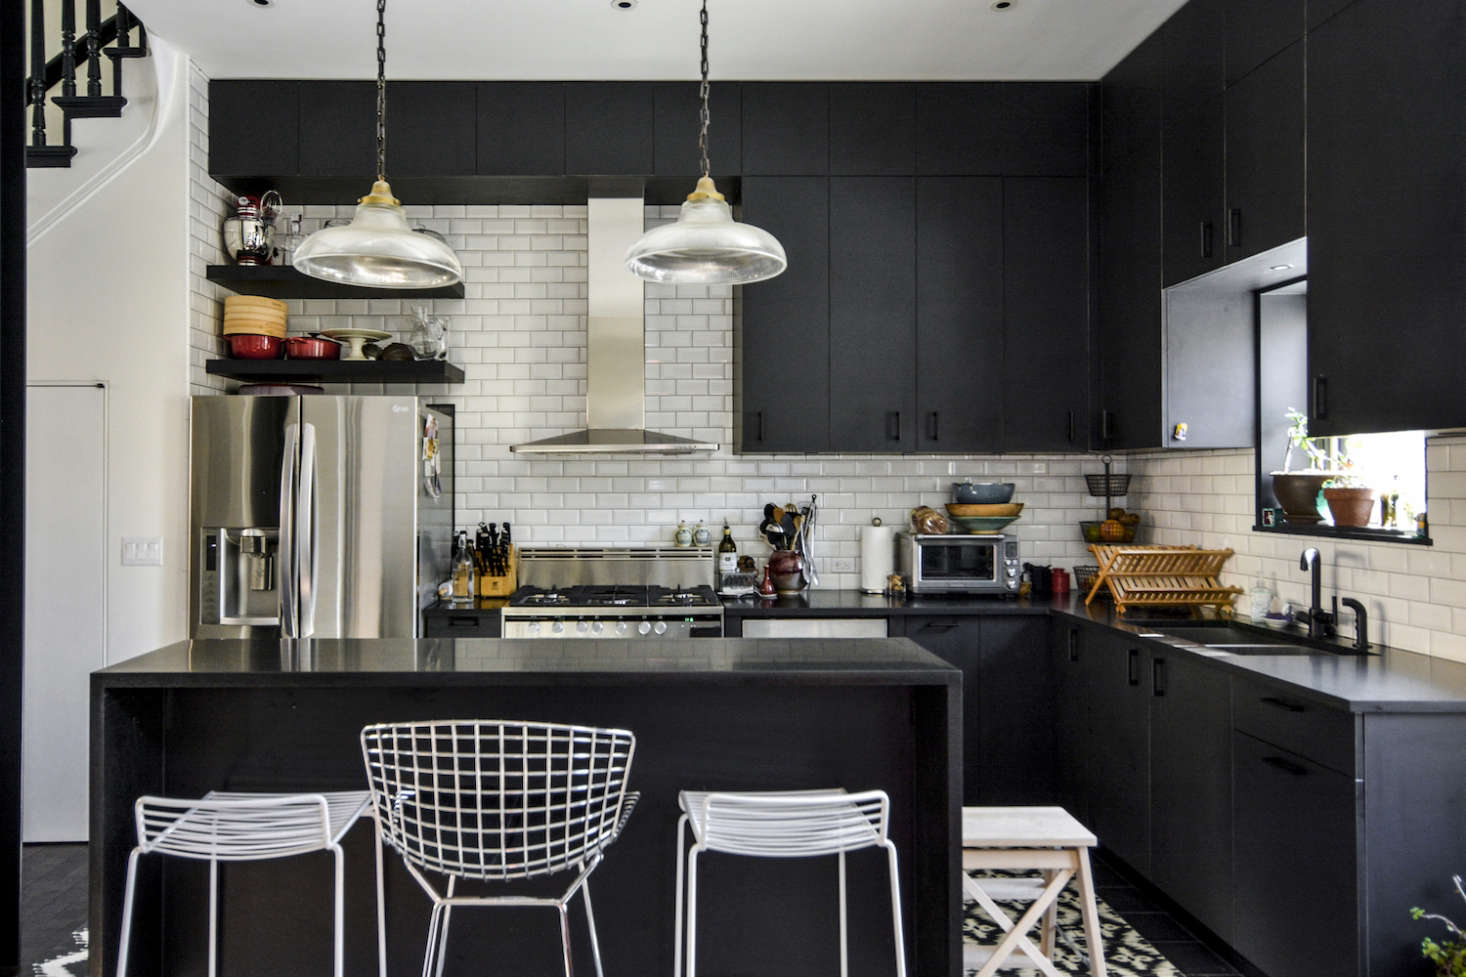 A Brooklyn kitchen has Ikea Sektion base cabinets fitted with custom doors ofChemetal Magnetic Chalkboard Laminate, EmtekBrass Trail Pulls, beveled subway tiles, and black honed granite countertops. For more, seeTwo Young Architects Tackle Their Own Brooklyn Townhouse.